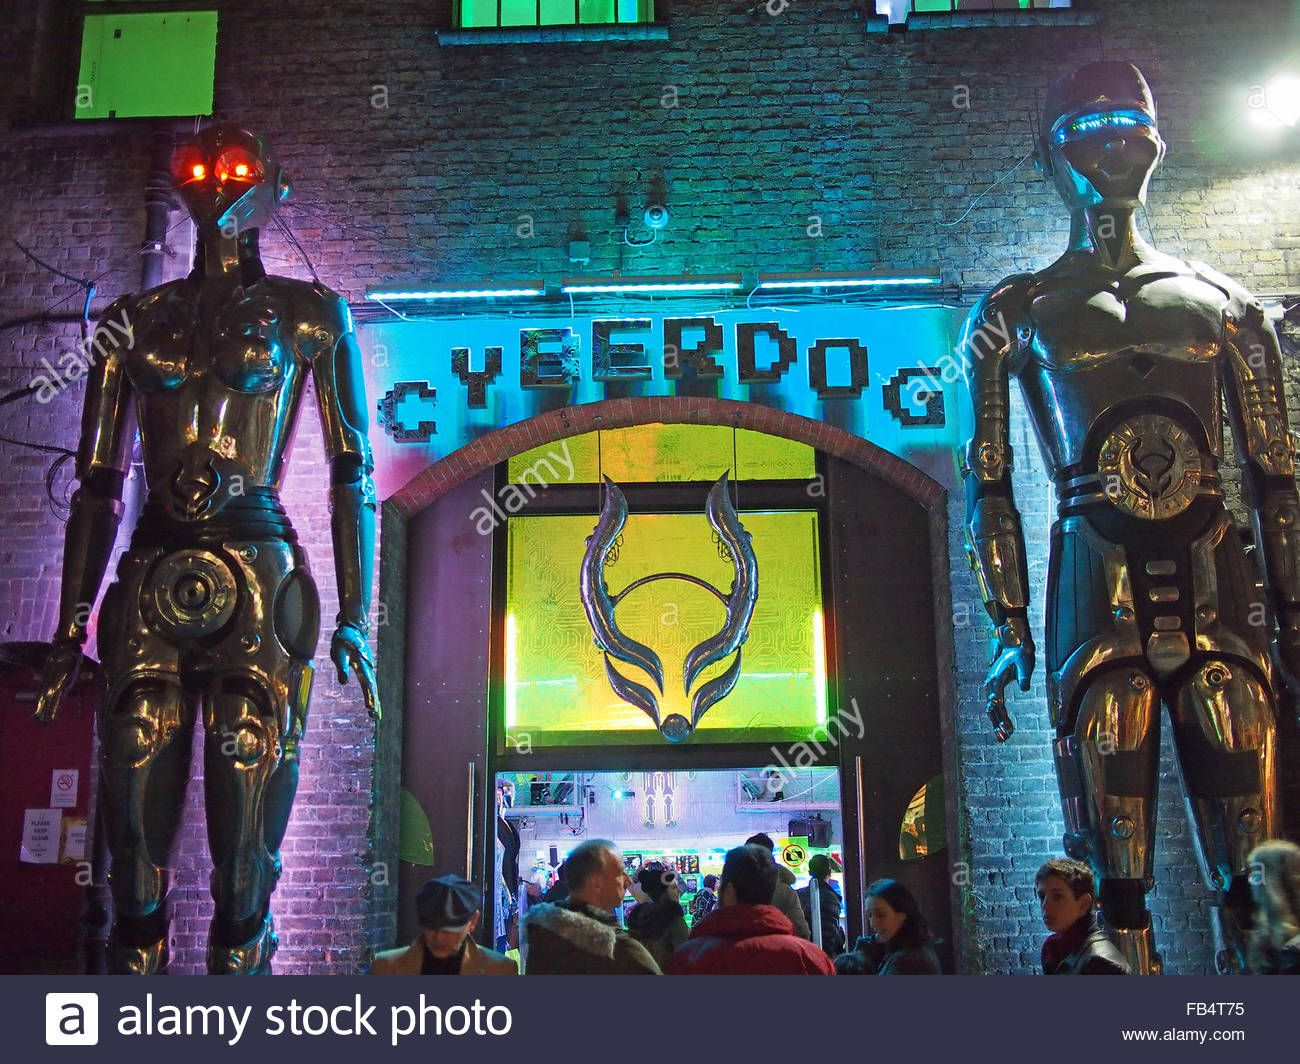 http://c8.alamy.com/comp/FB4T75/view-at-night-of-the-colourful-entrance-to-cyberdog-in-stables-market-FB4T75.jpg